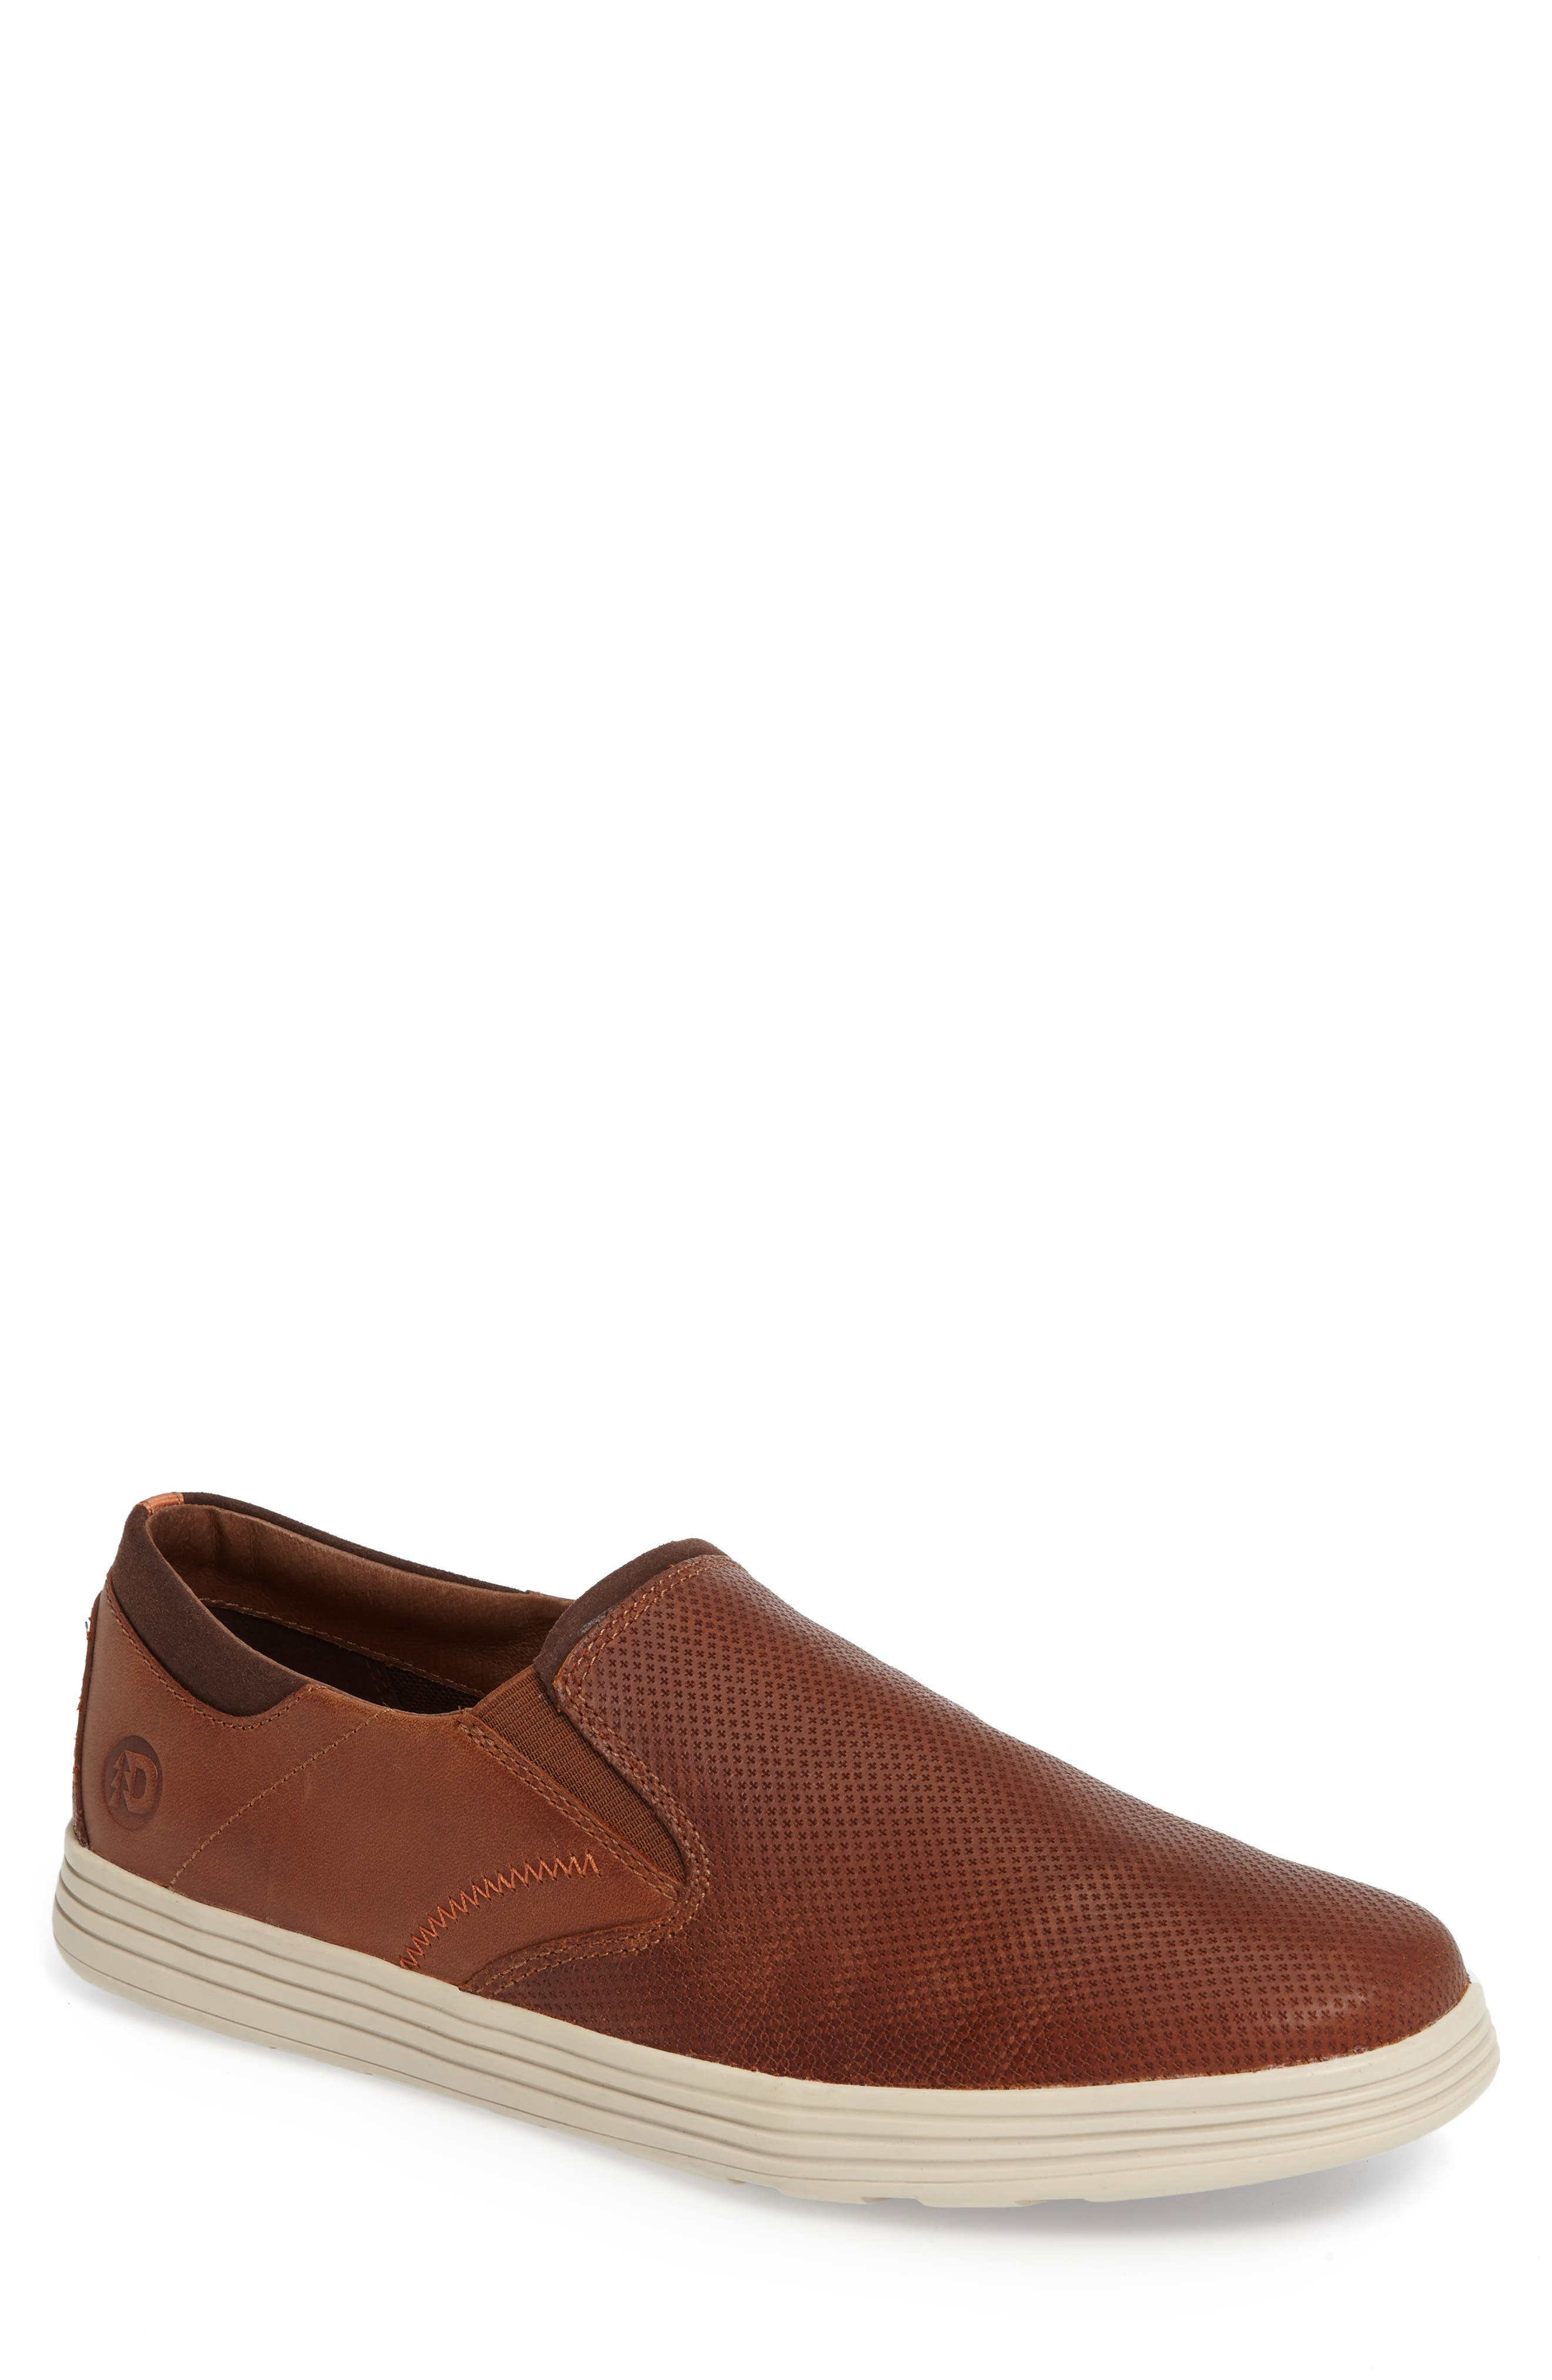 DUNHAM Colchester Slip-On, Main, color, BROWN